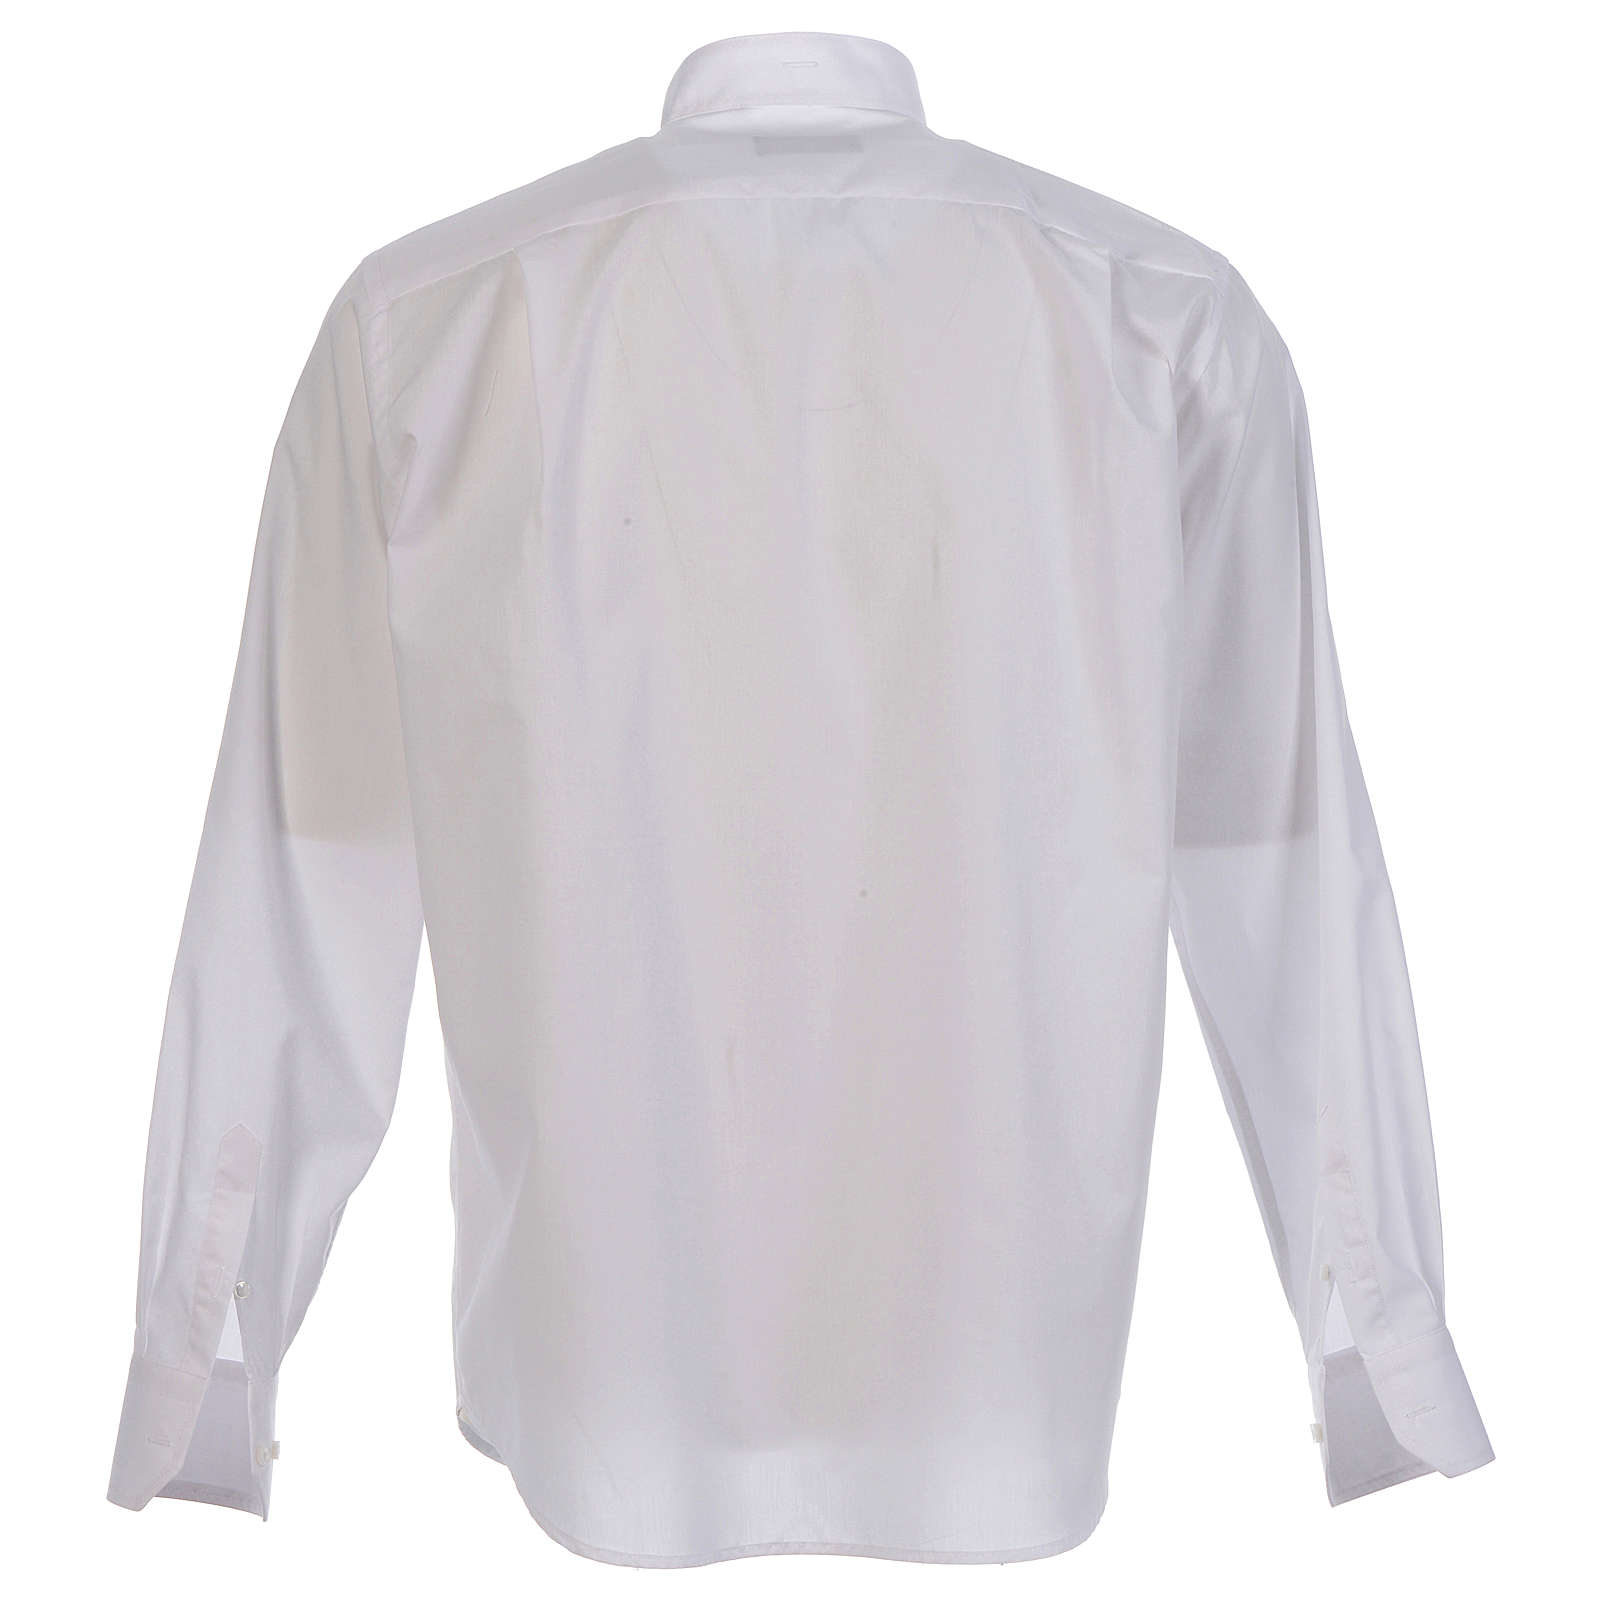 Under Cassock Shirt with open shirt collar long sleeve 4